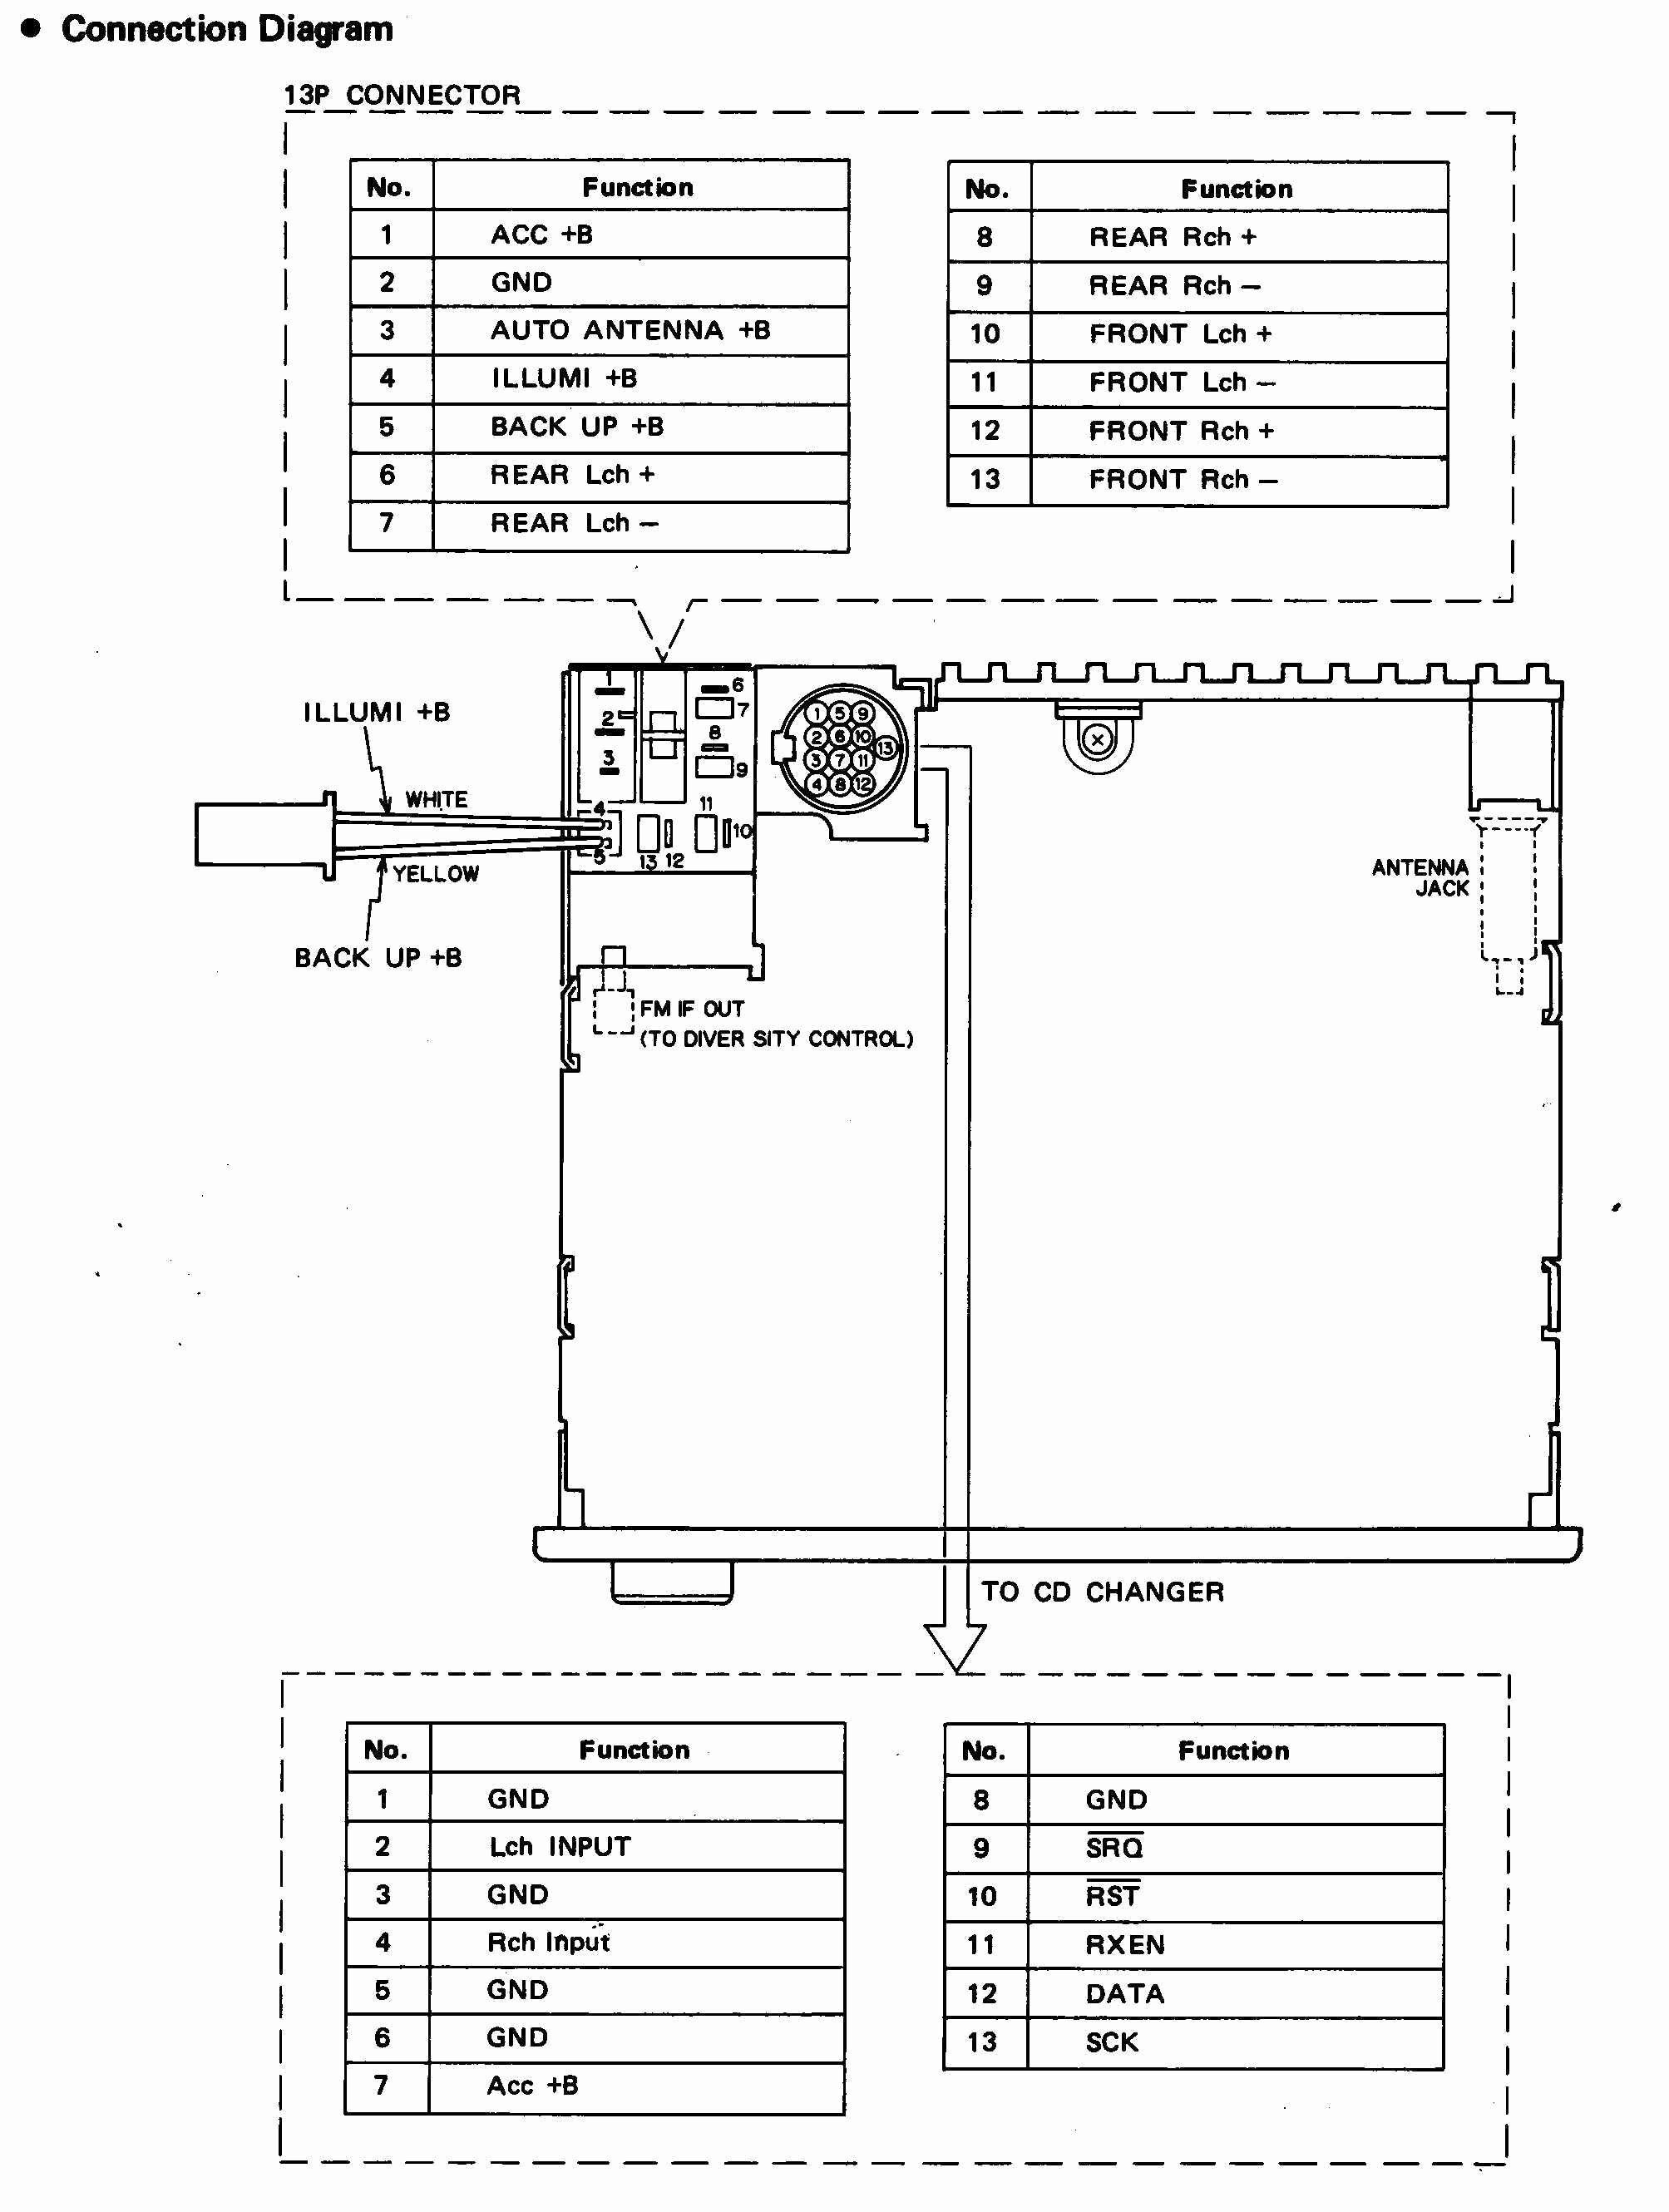 Wiring Diagram Acronyms Diagram Diagramtemplate Diagramsample Mitsubishi Diamante Vocho